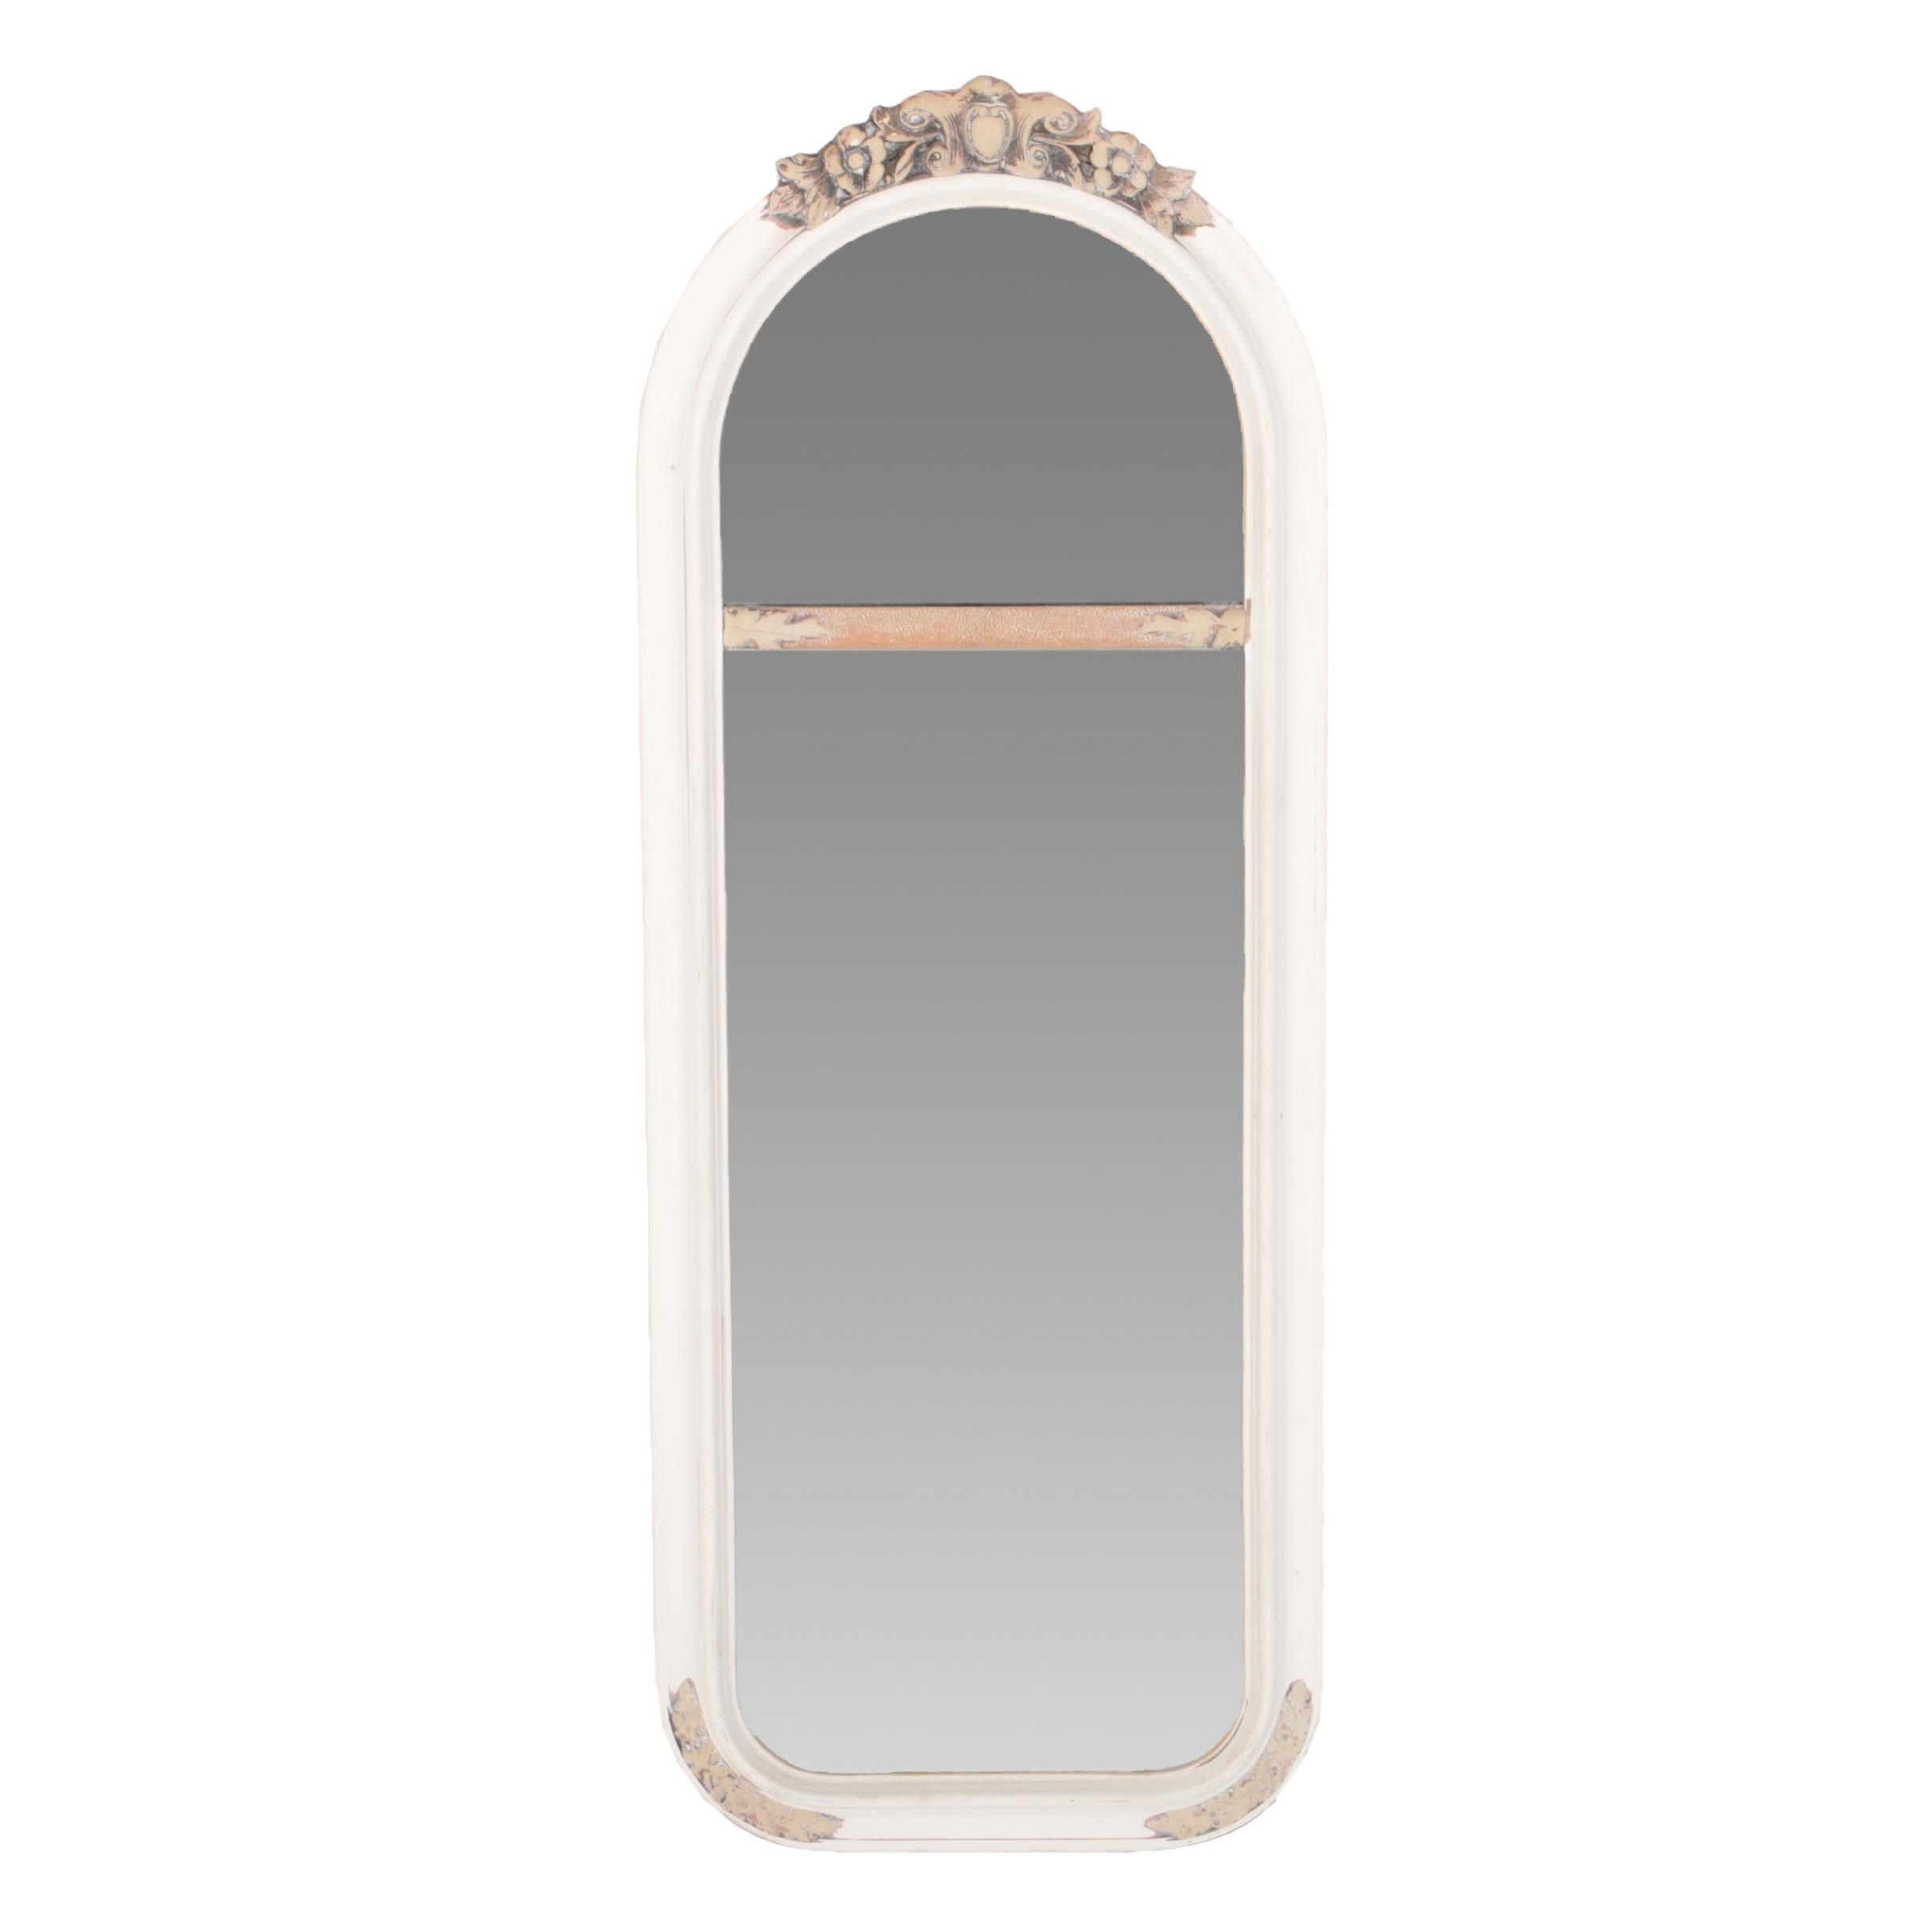 Vintage Arched Trumeau Style Wall Mirror by Hax-Smith Furniture Co